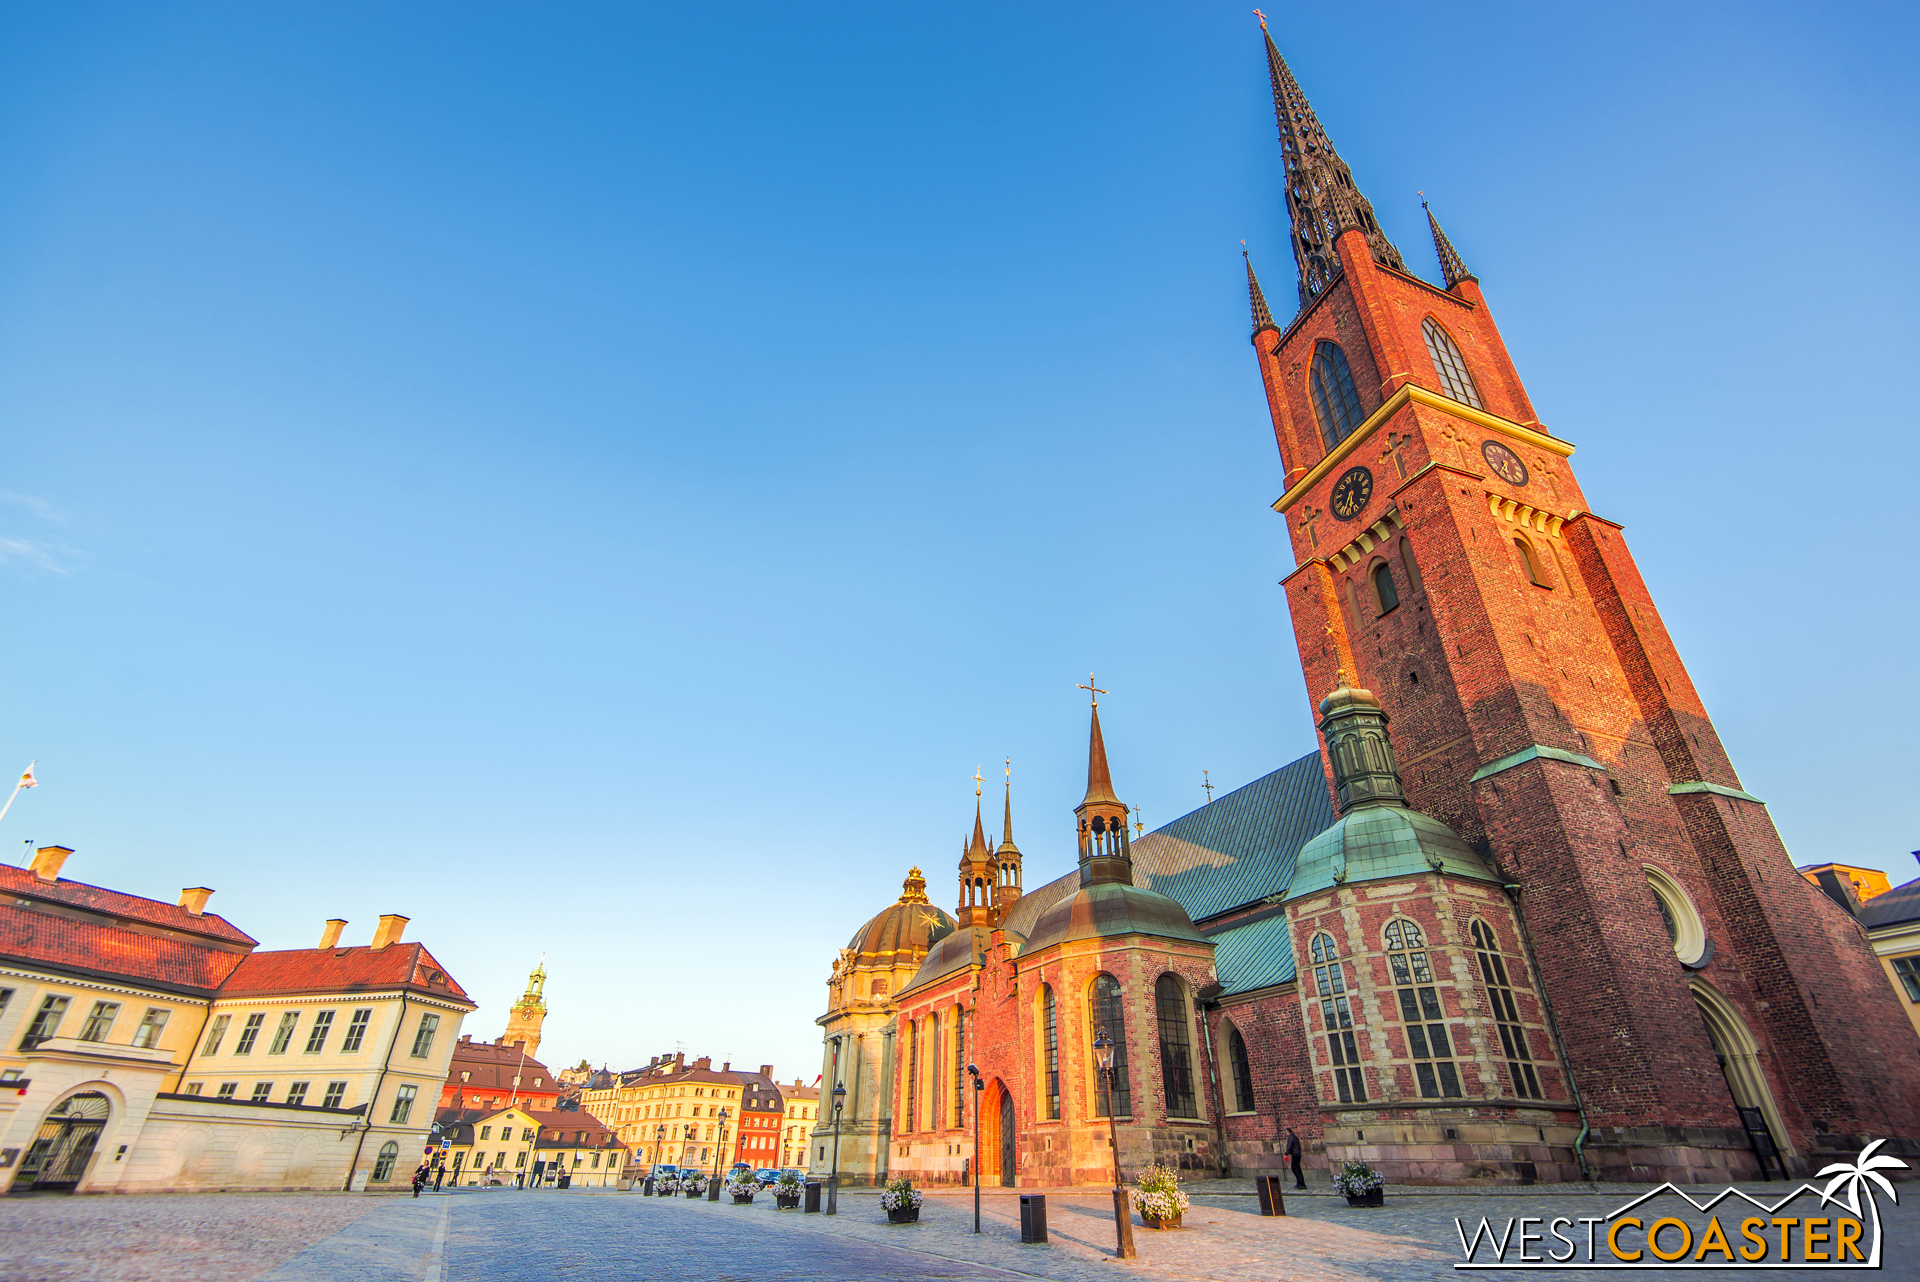 Beautiful Riddarholm Church, located on the island of Riddarholmen (part of Gamla Stan), is also known as the burial place for many Swedish monarchs.